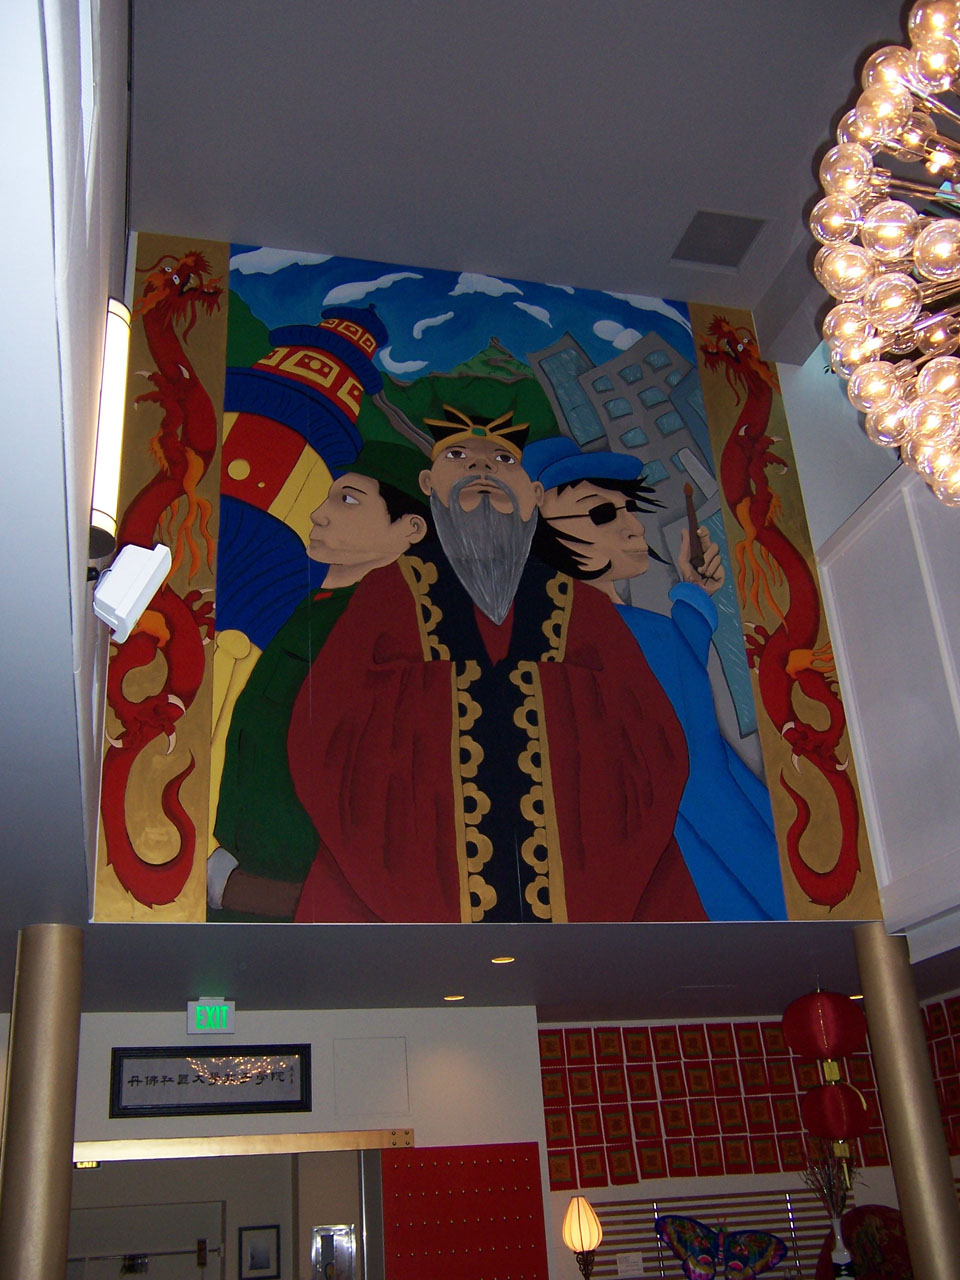 MURAL Phelps Rogers L et al, Painted Mural, 2009, 16ft w x 32 ft h, Confucius Institute Denver.JPG